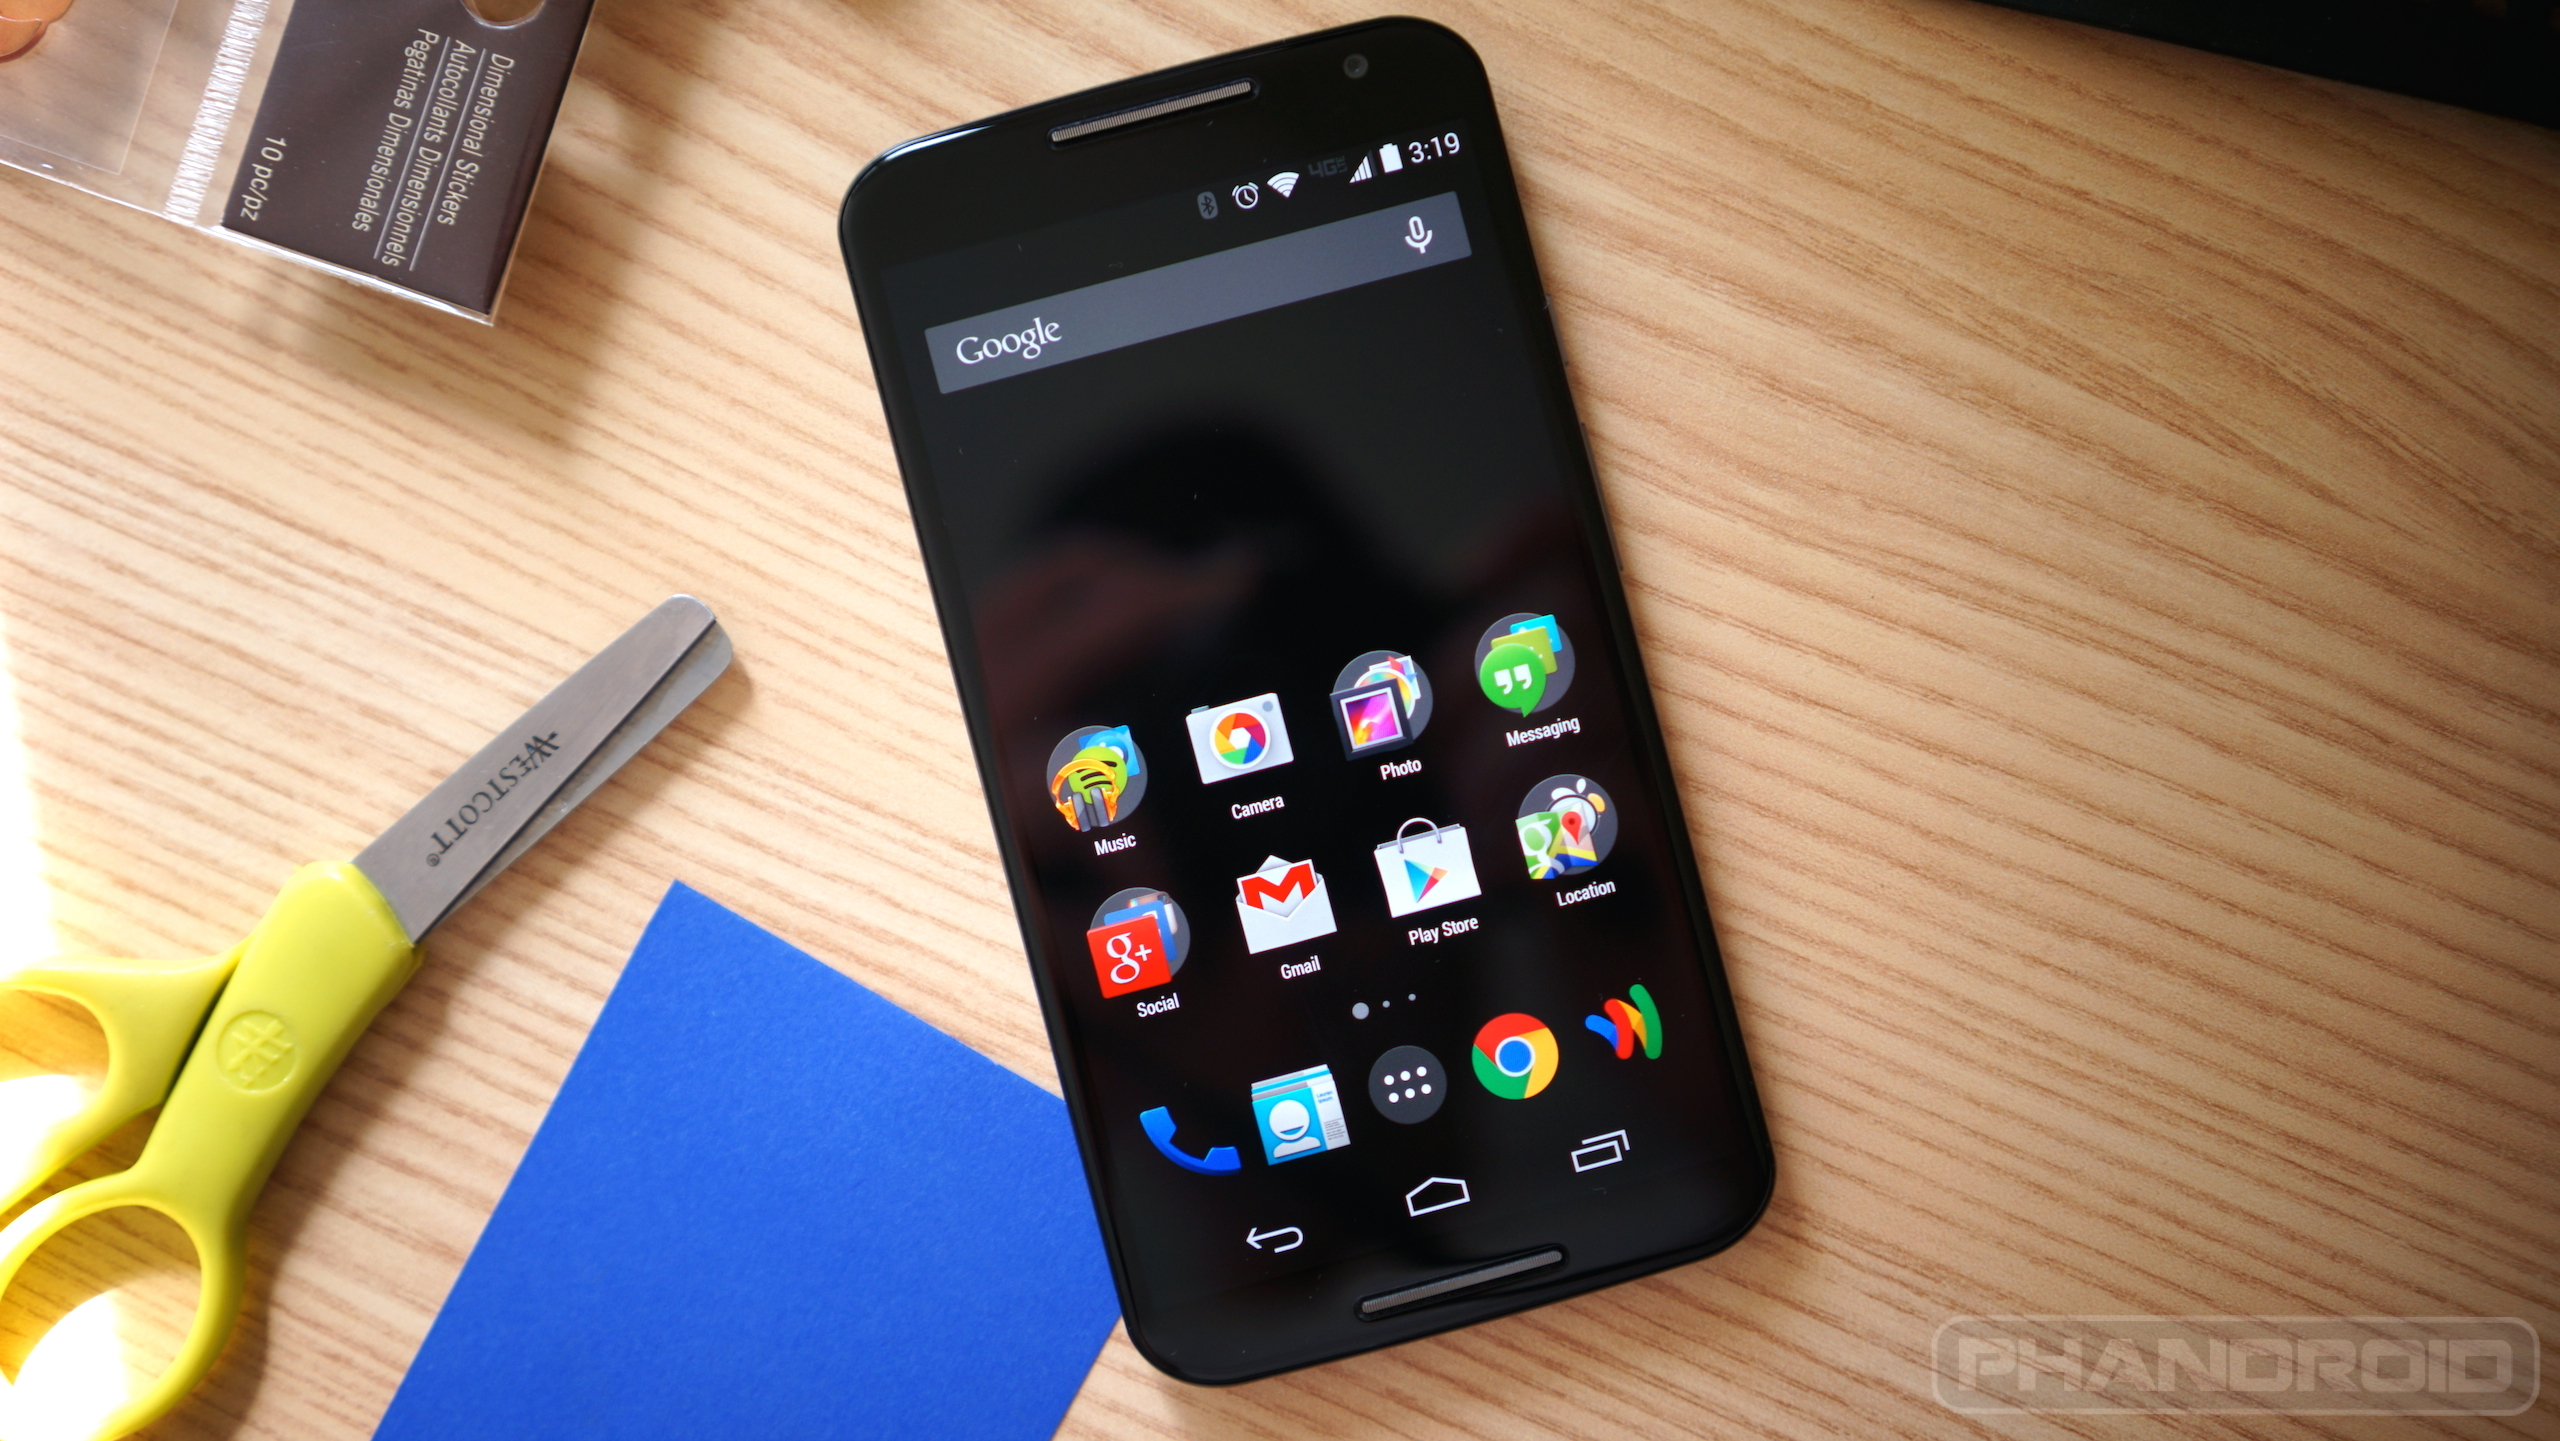 10 things every new Moto X (2nd Gen) owner should do